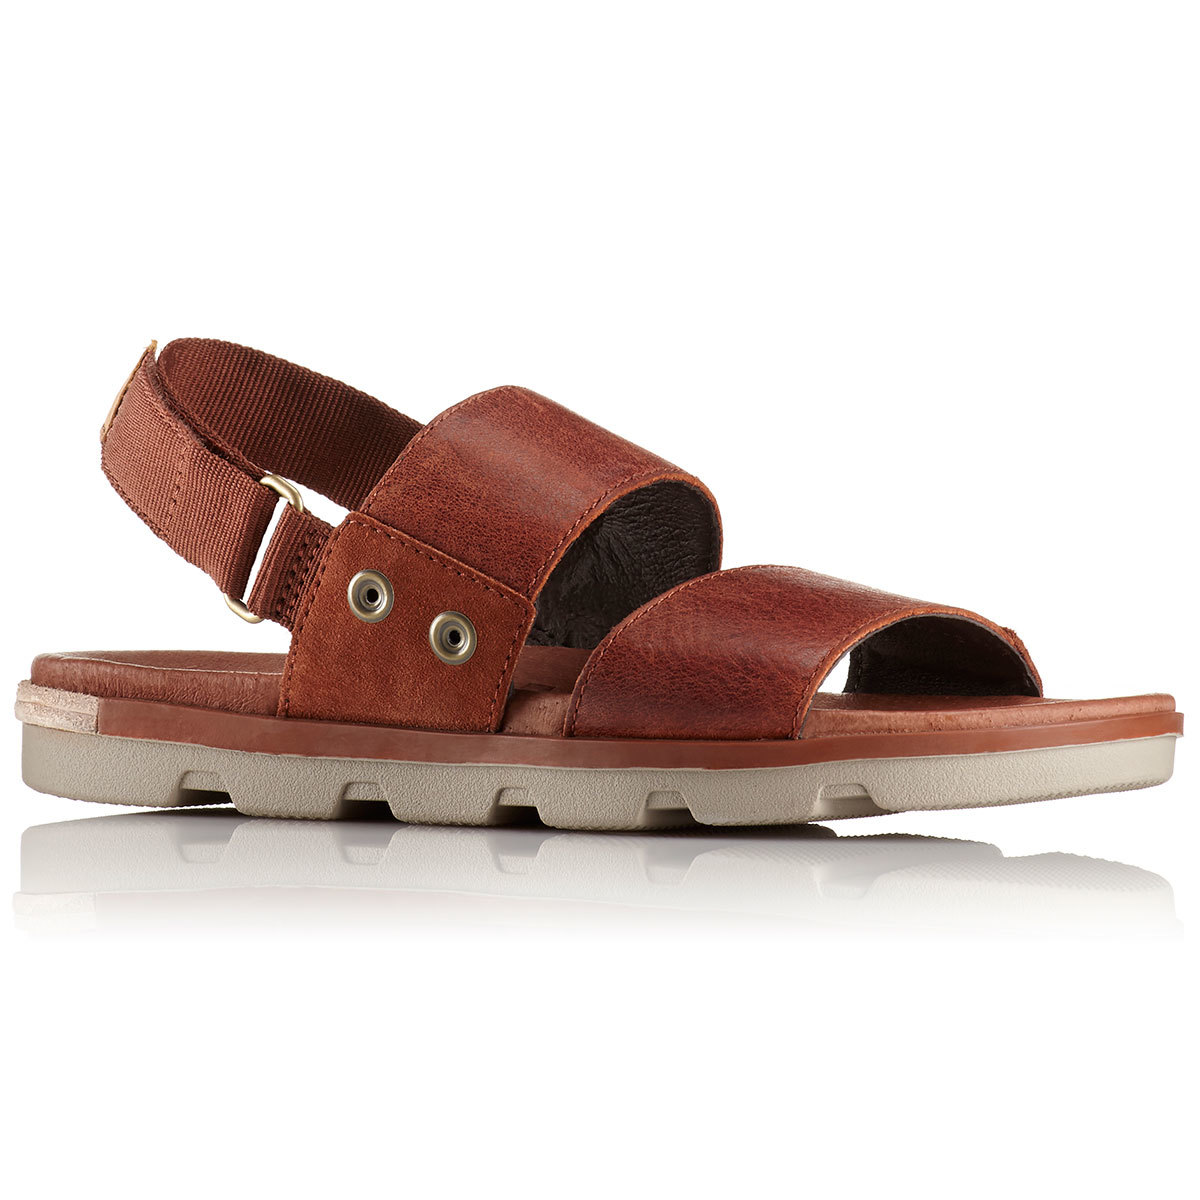 Sorel Women's Torpeda Sandals, Sahara/fossil - Brown, 8